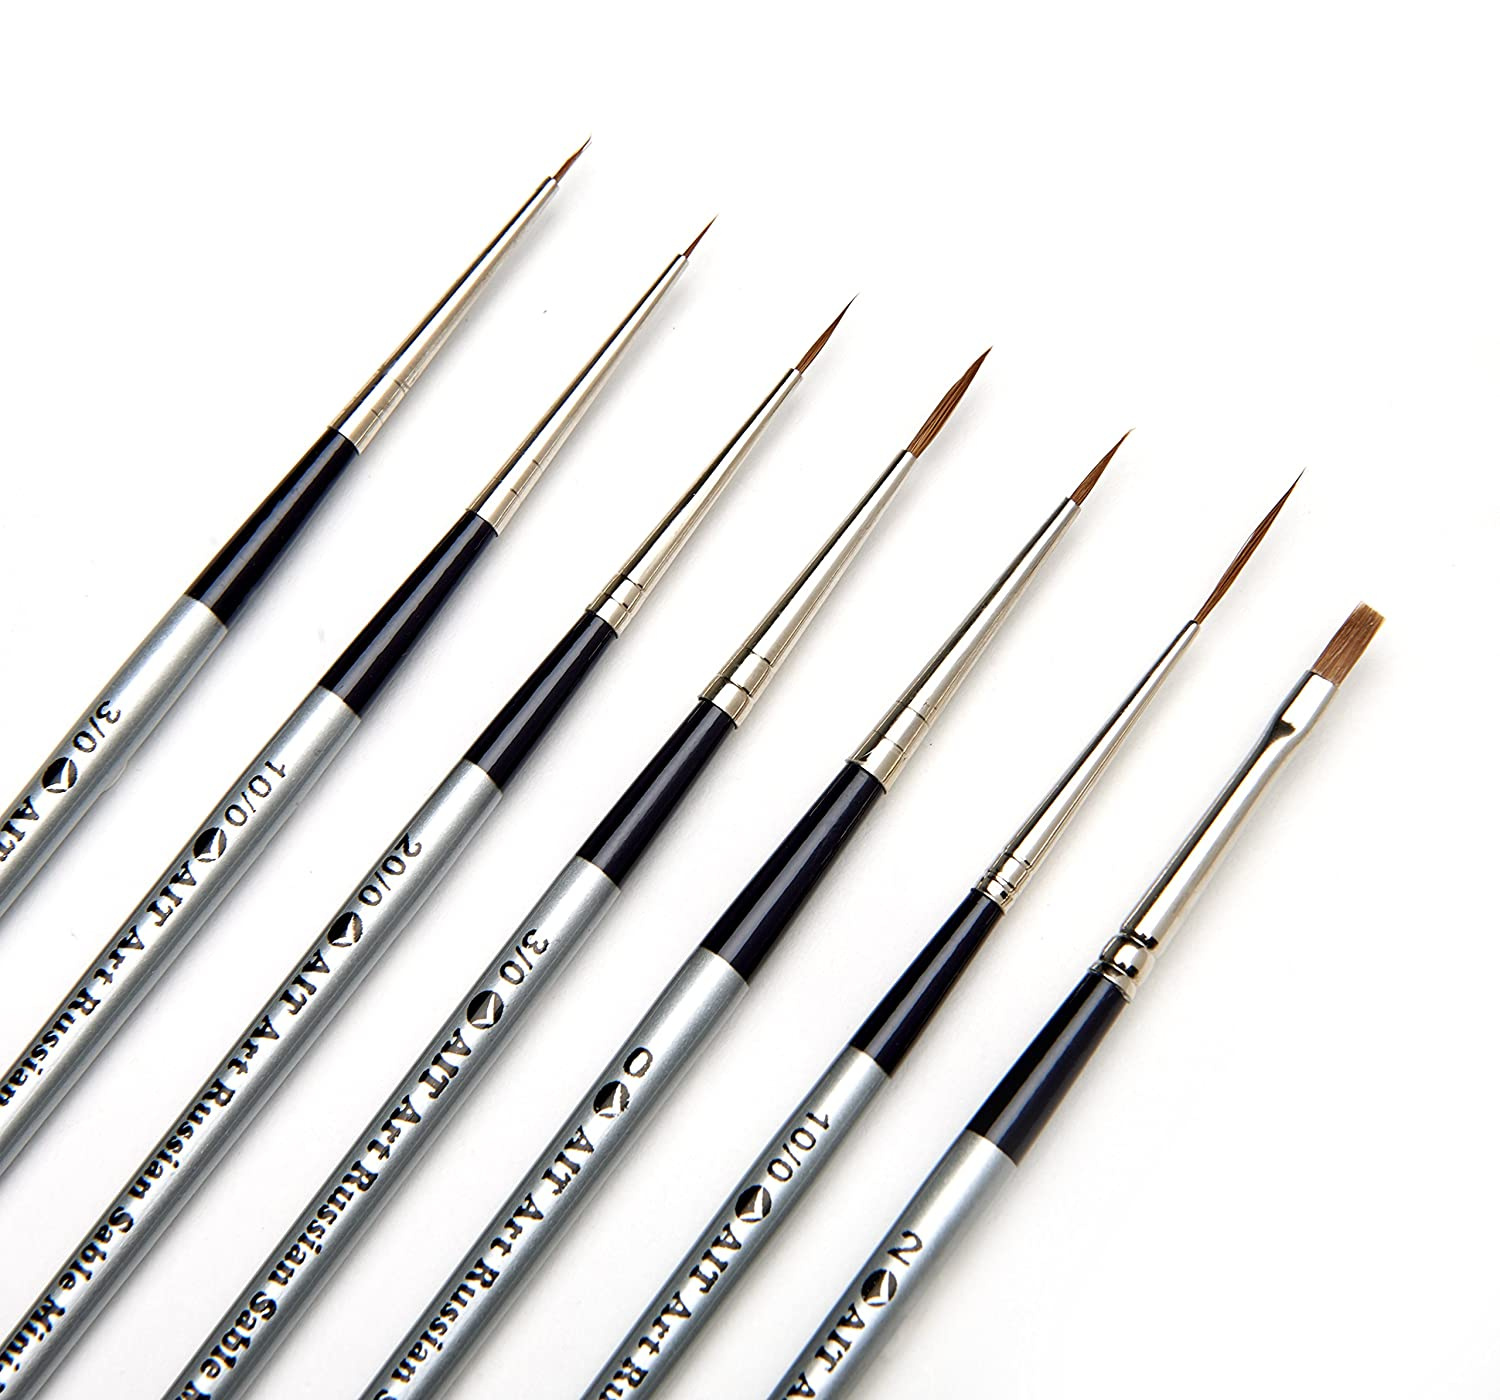 AIT Art Select Red Sable Detail Brush Set, 7 Pure Russian Sable Paint Brushes, Handmade in Germany for Crafting Exquisite Details Using Oil, Acrylic, or Watercolors AIT Products 1802